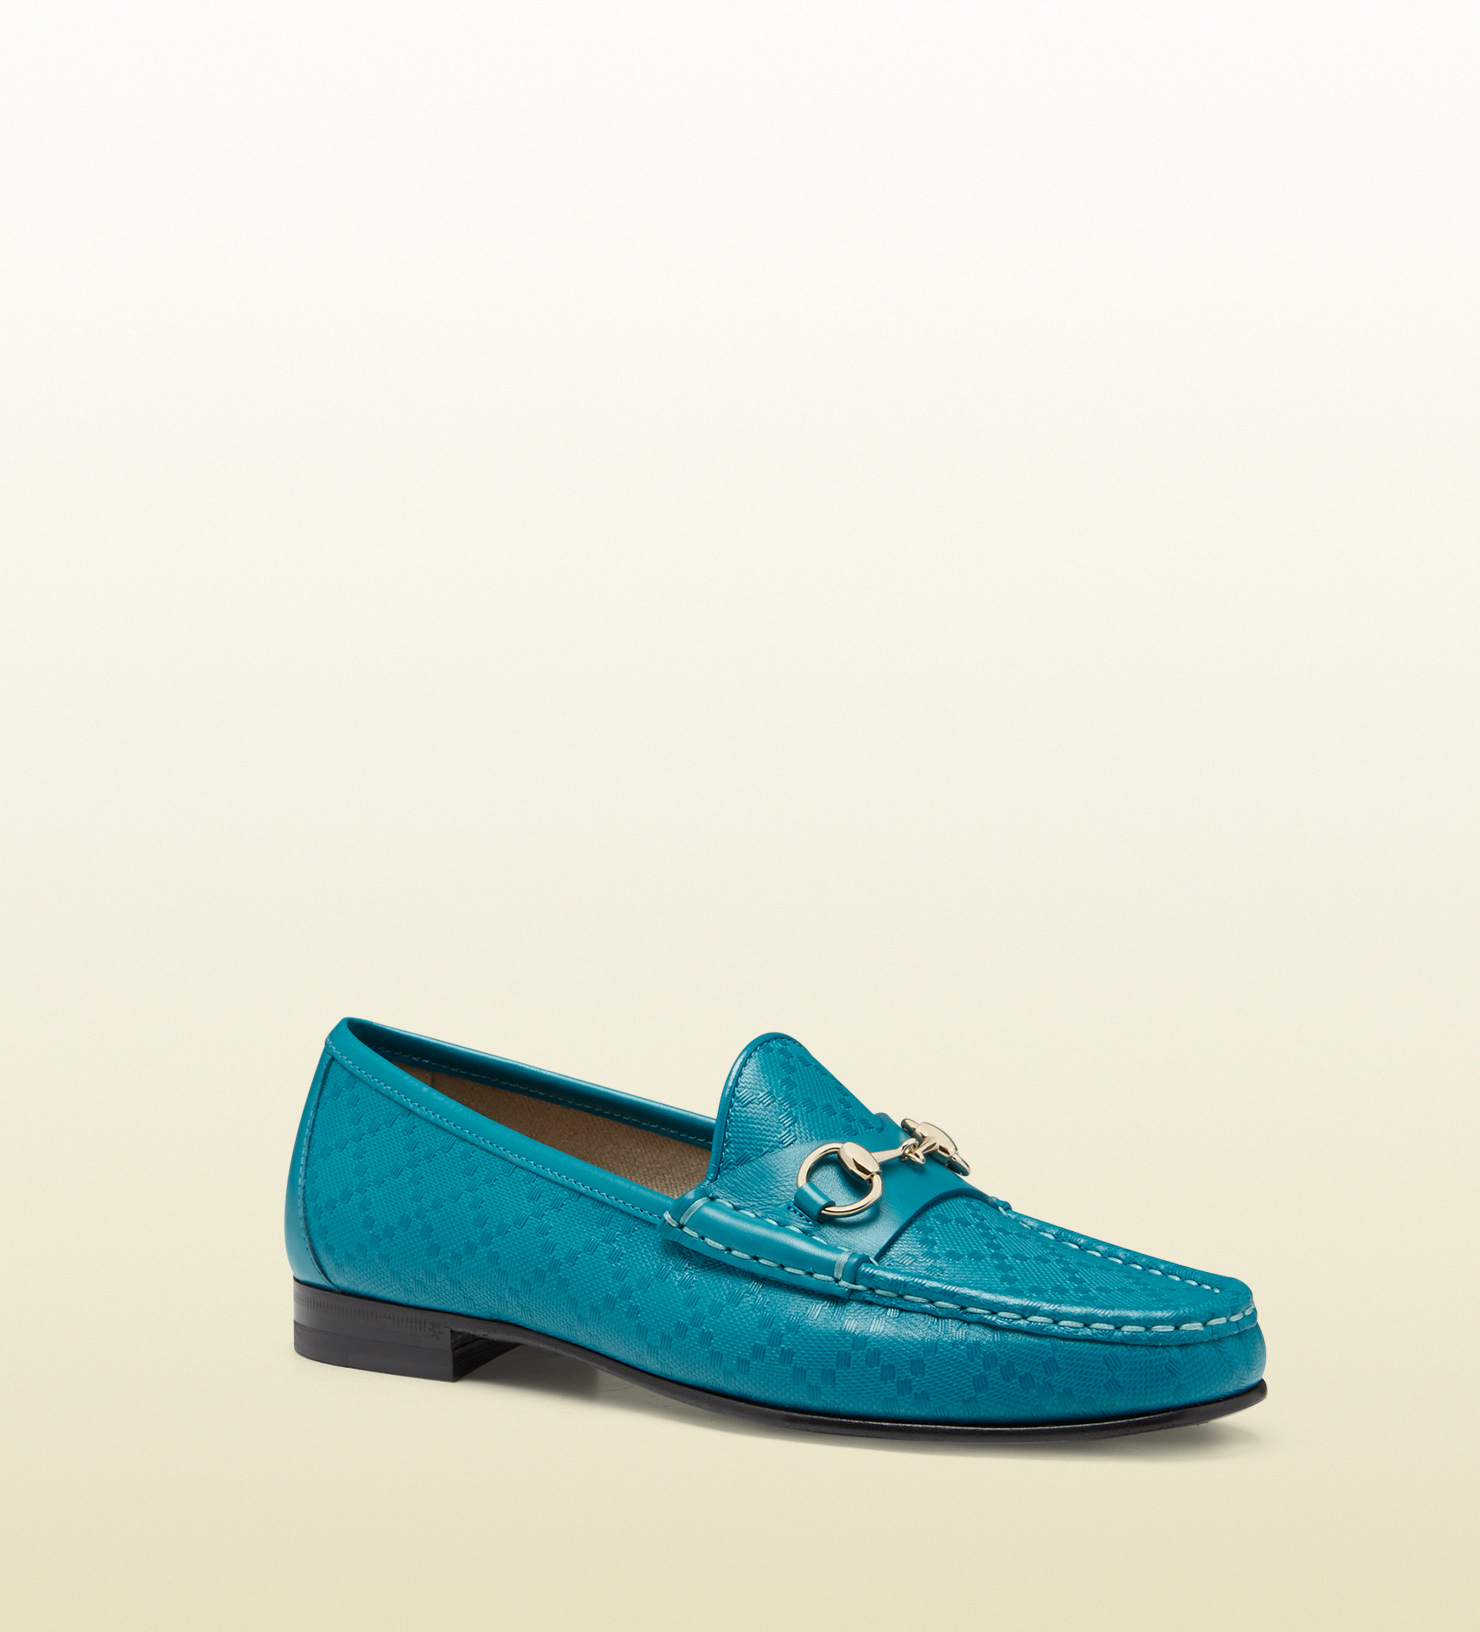 1d7bdb7b366 Lyst - Gucci 1953 Horsebit Loafer In Diamante Leather in Blue